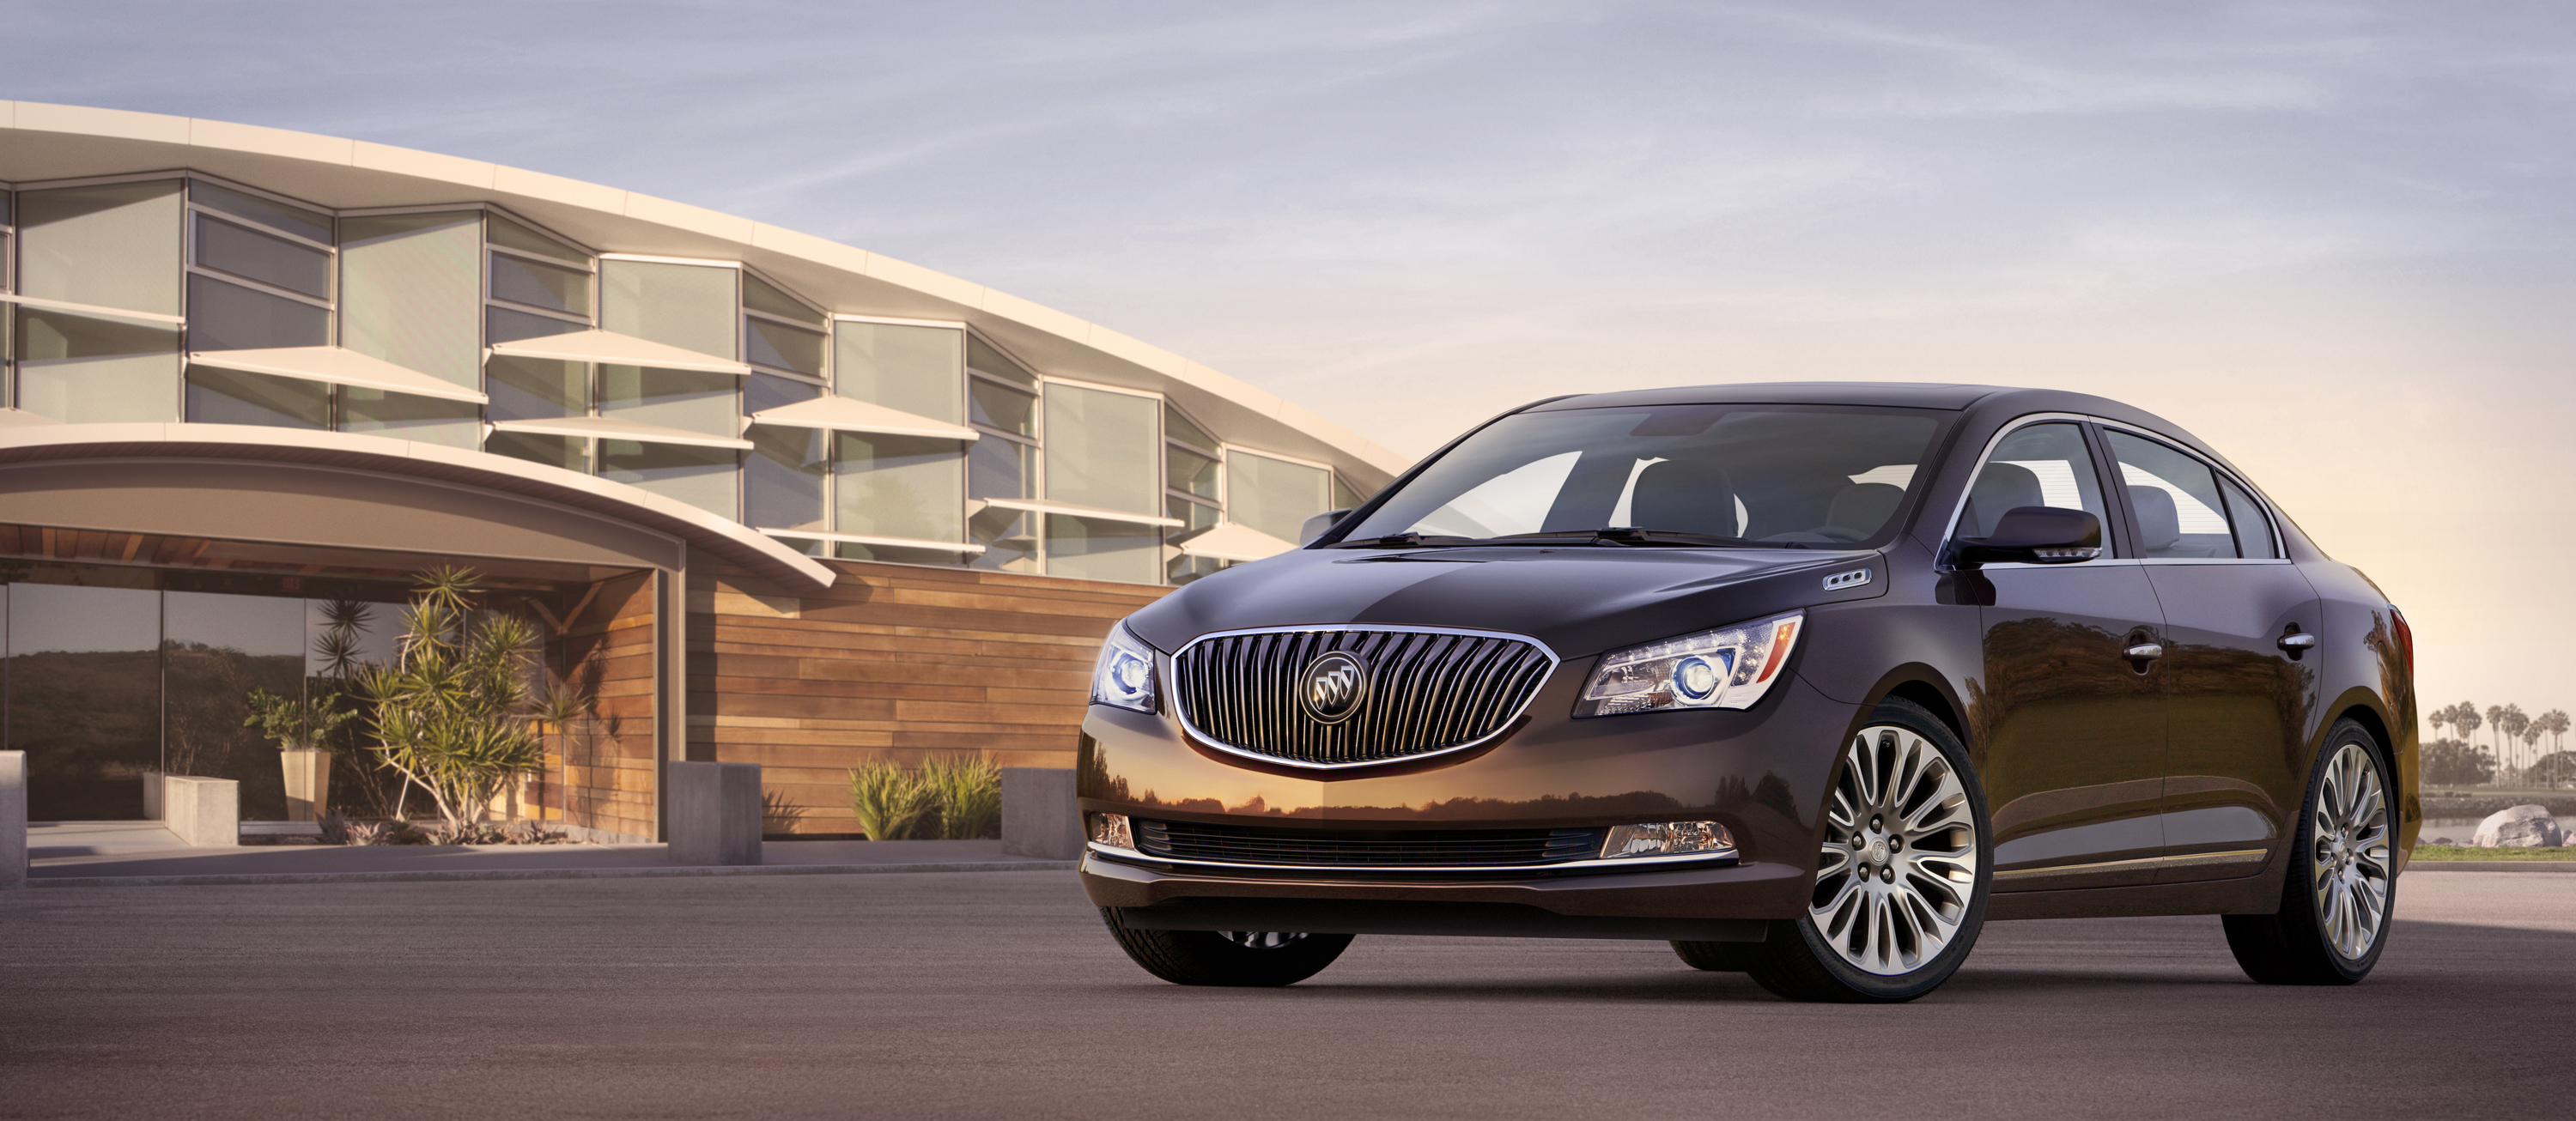 buick s review original test photo eassist first lacrosse drive and driver car reviews hybrid